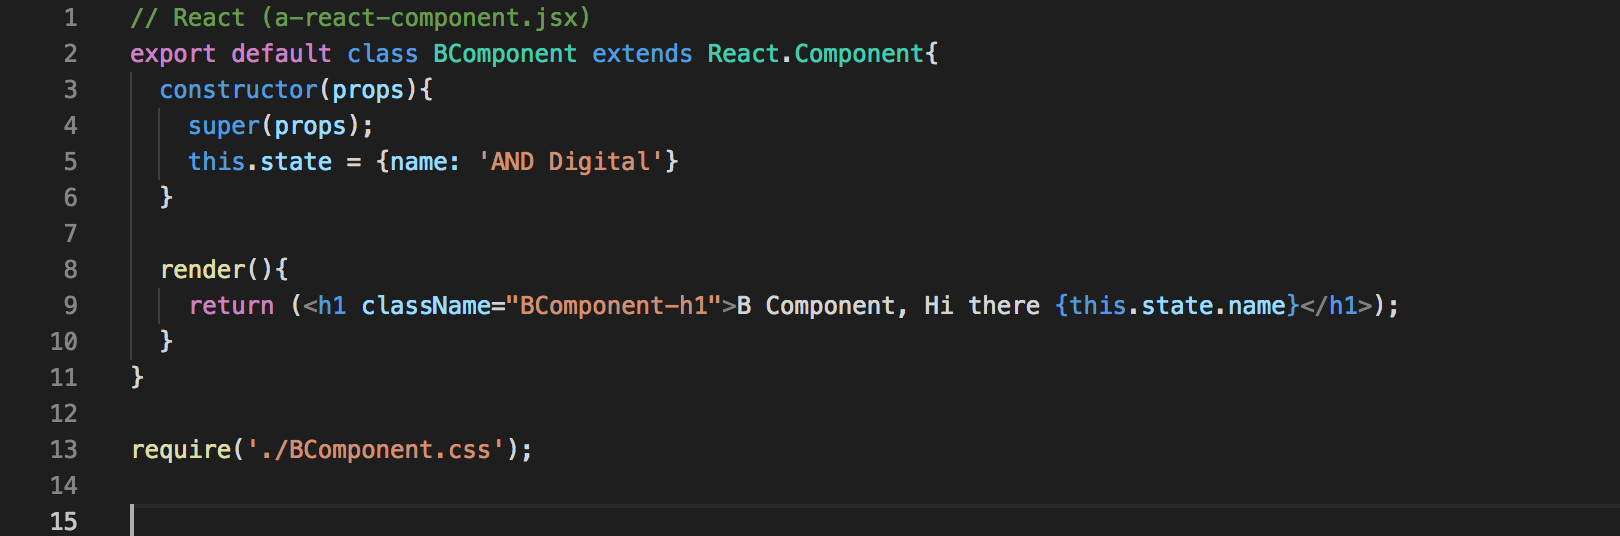 React snippet